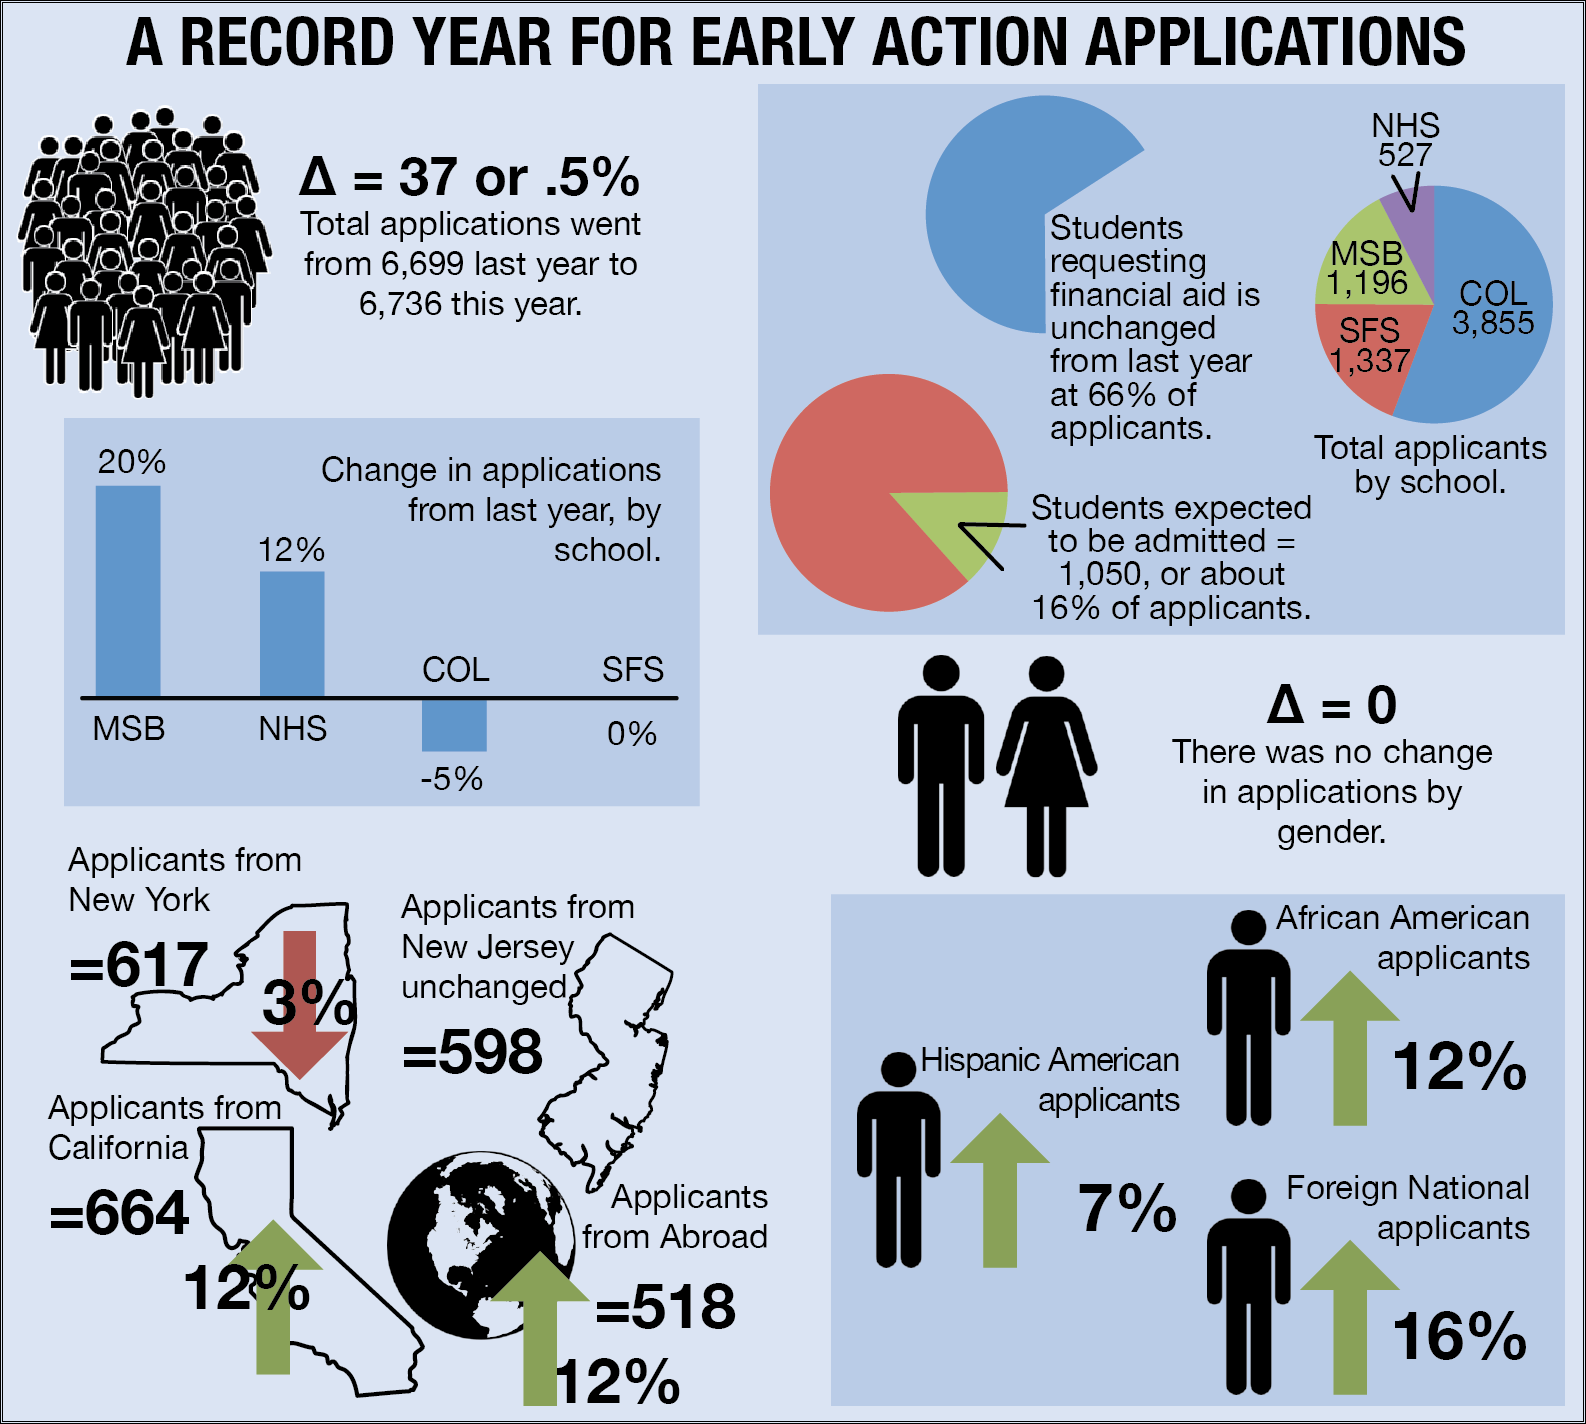 Early Applications Hit Record High